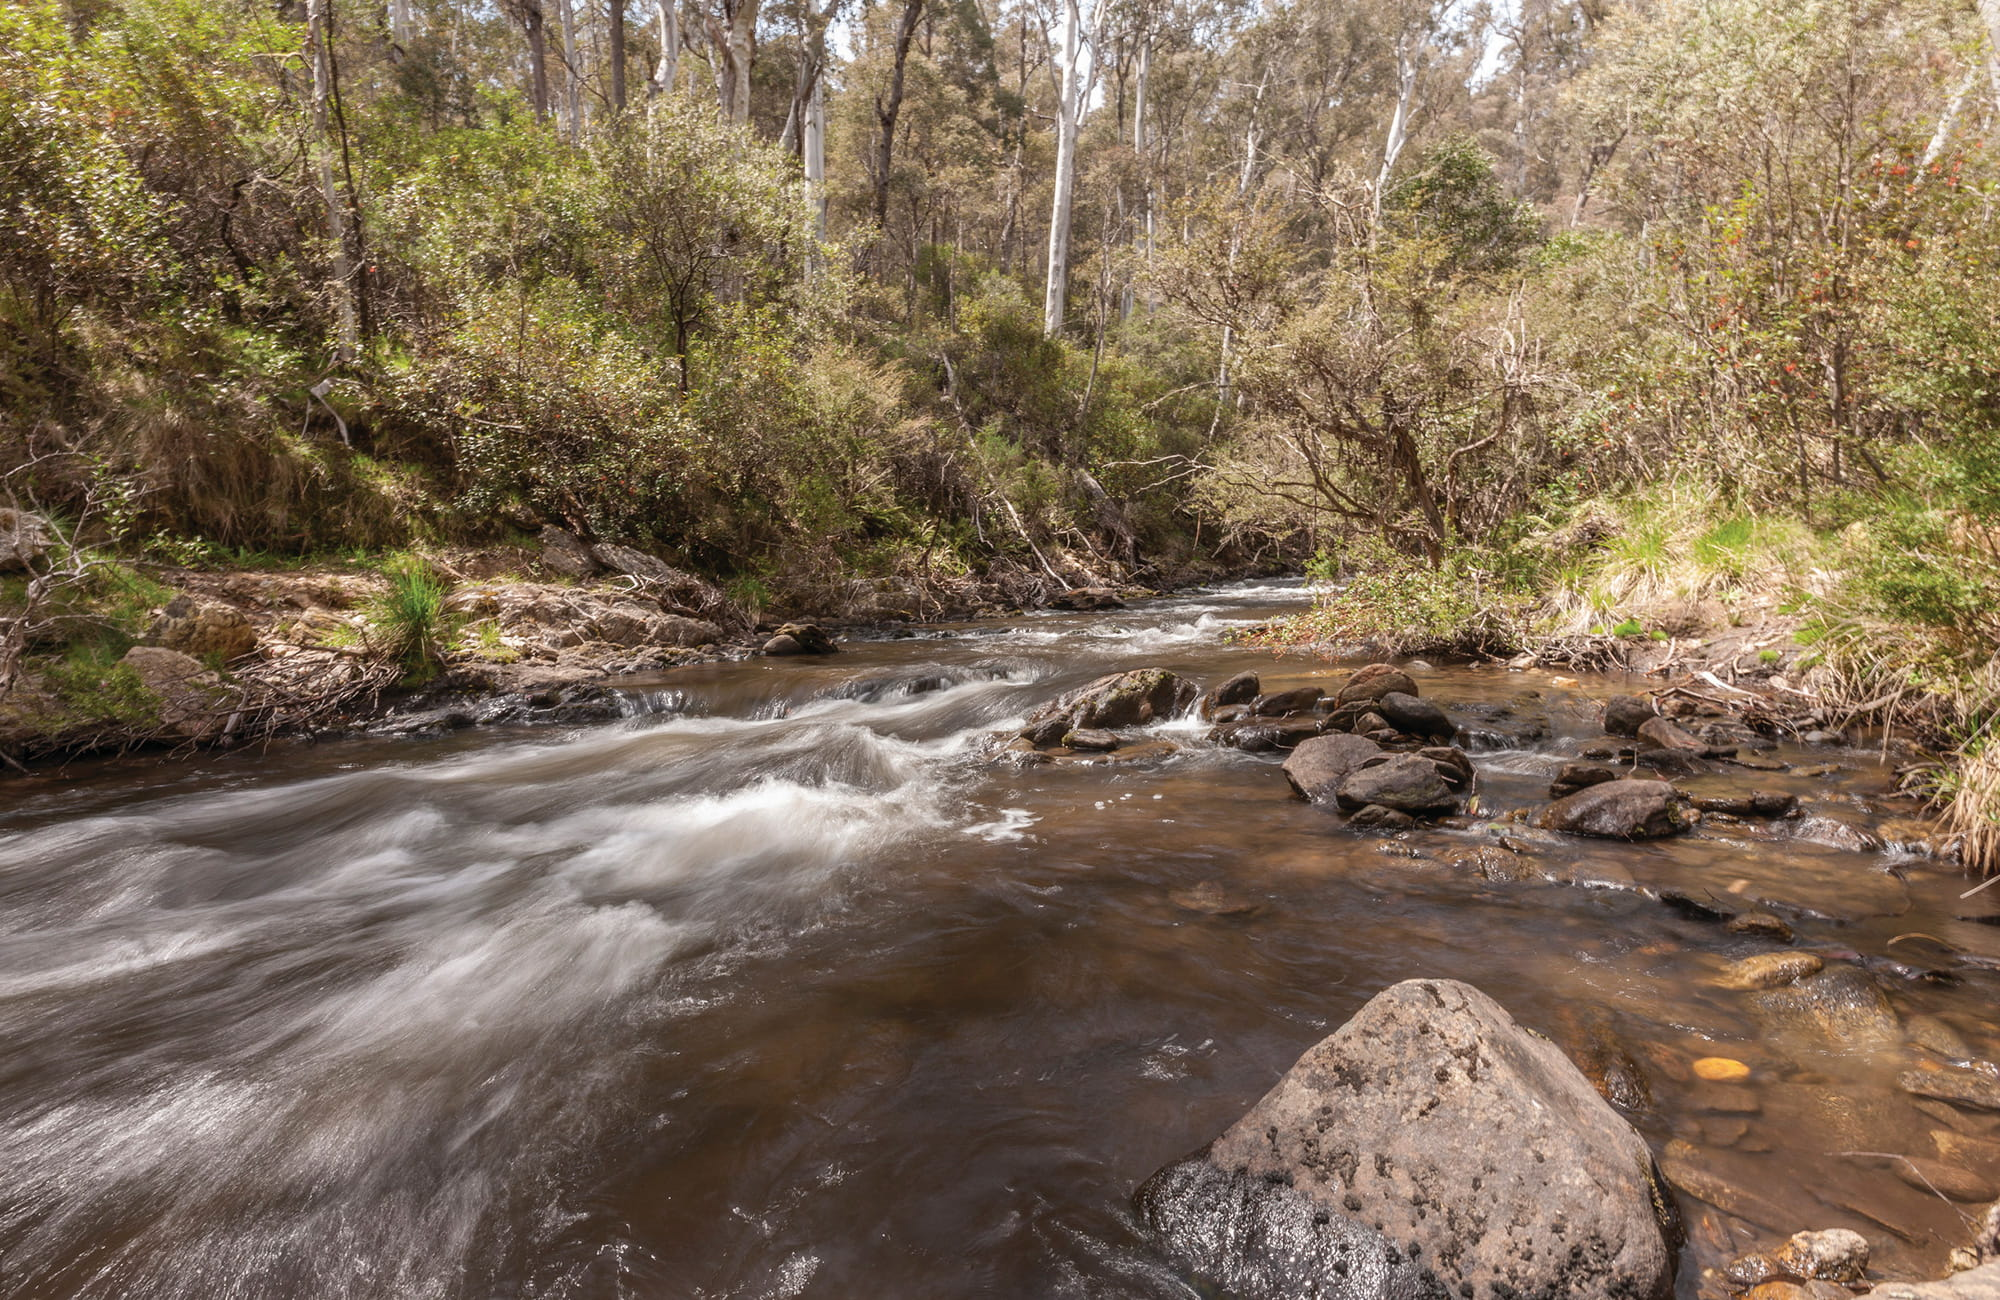 Buddong Creek near Buddong Falls Campground in the Tumut area of Kosciuszko National Park. Photo: Murray Vanderveer/OEH.